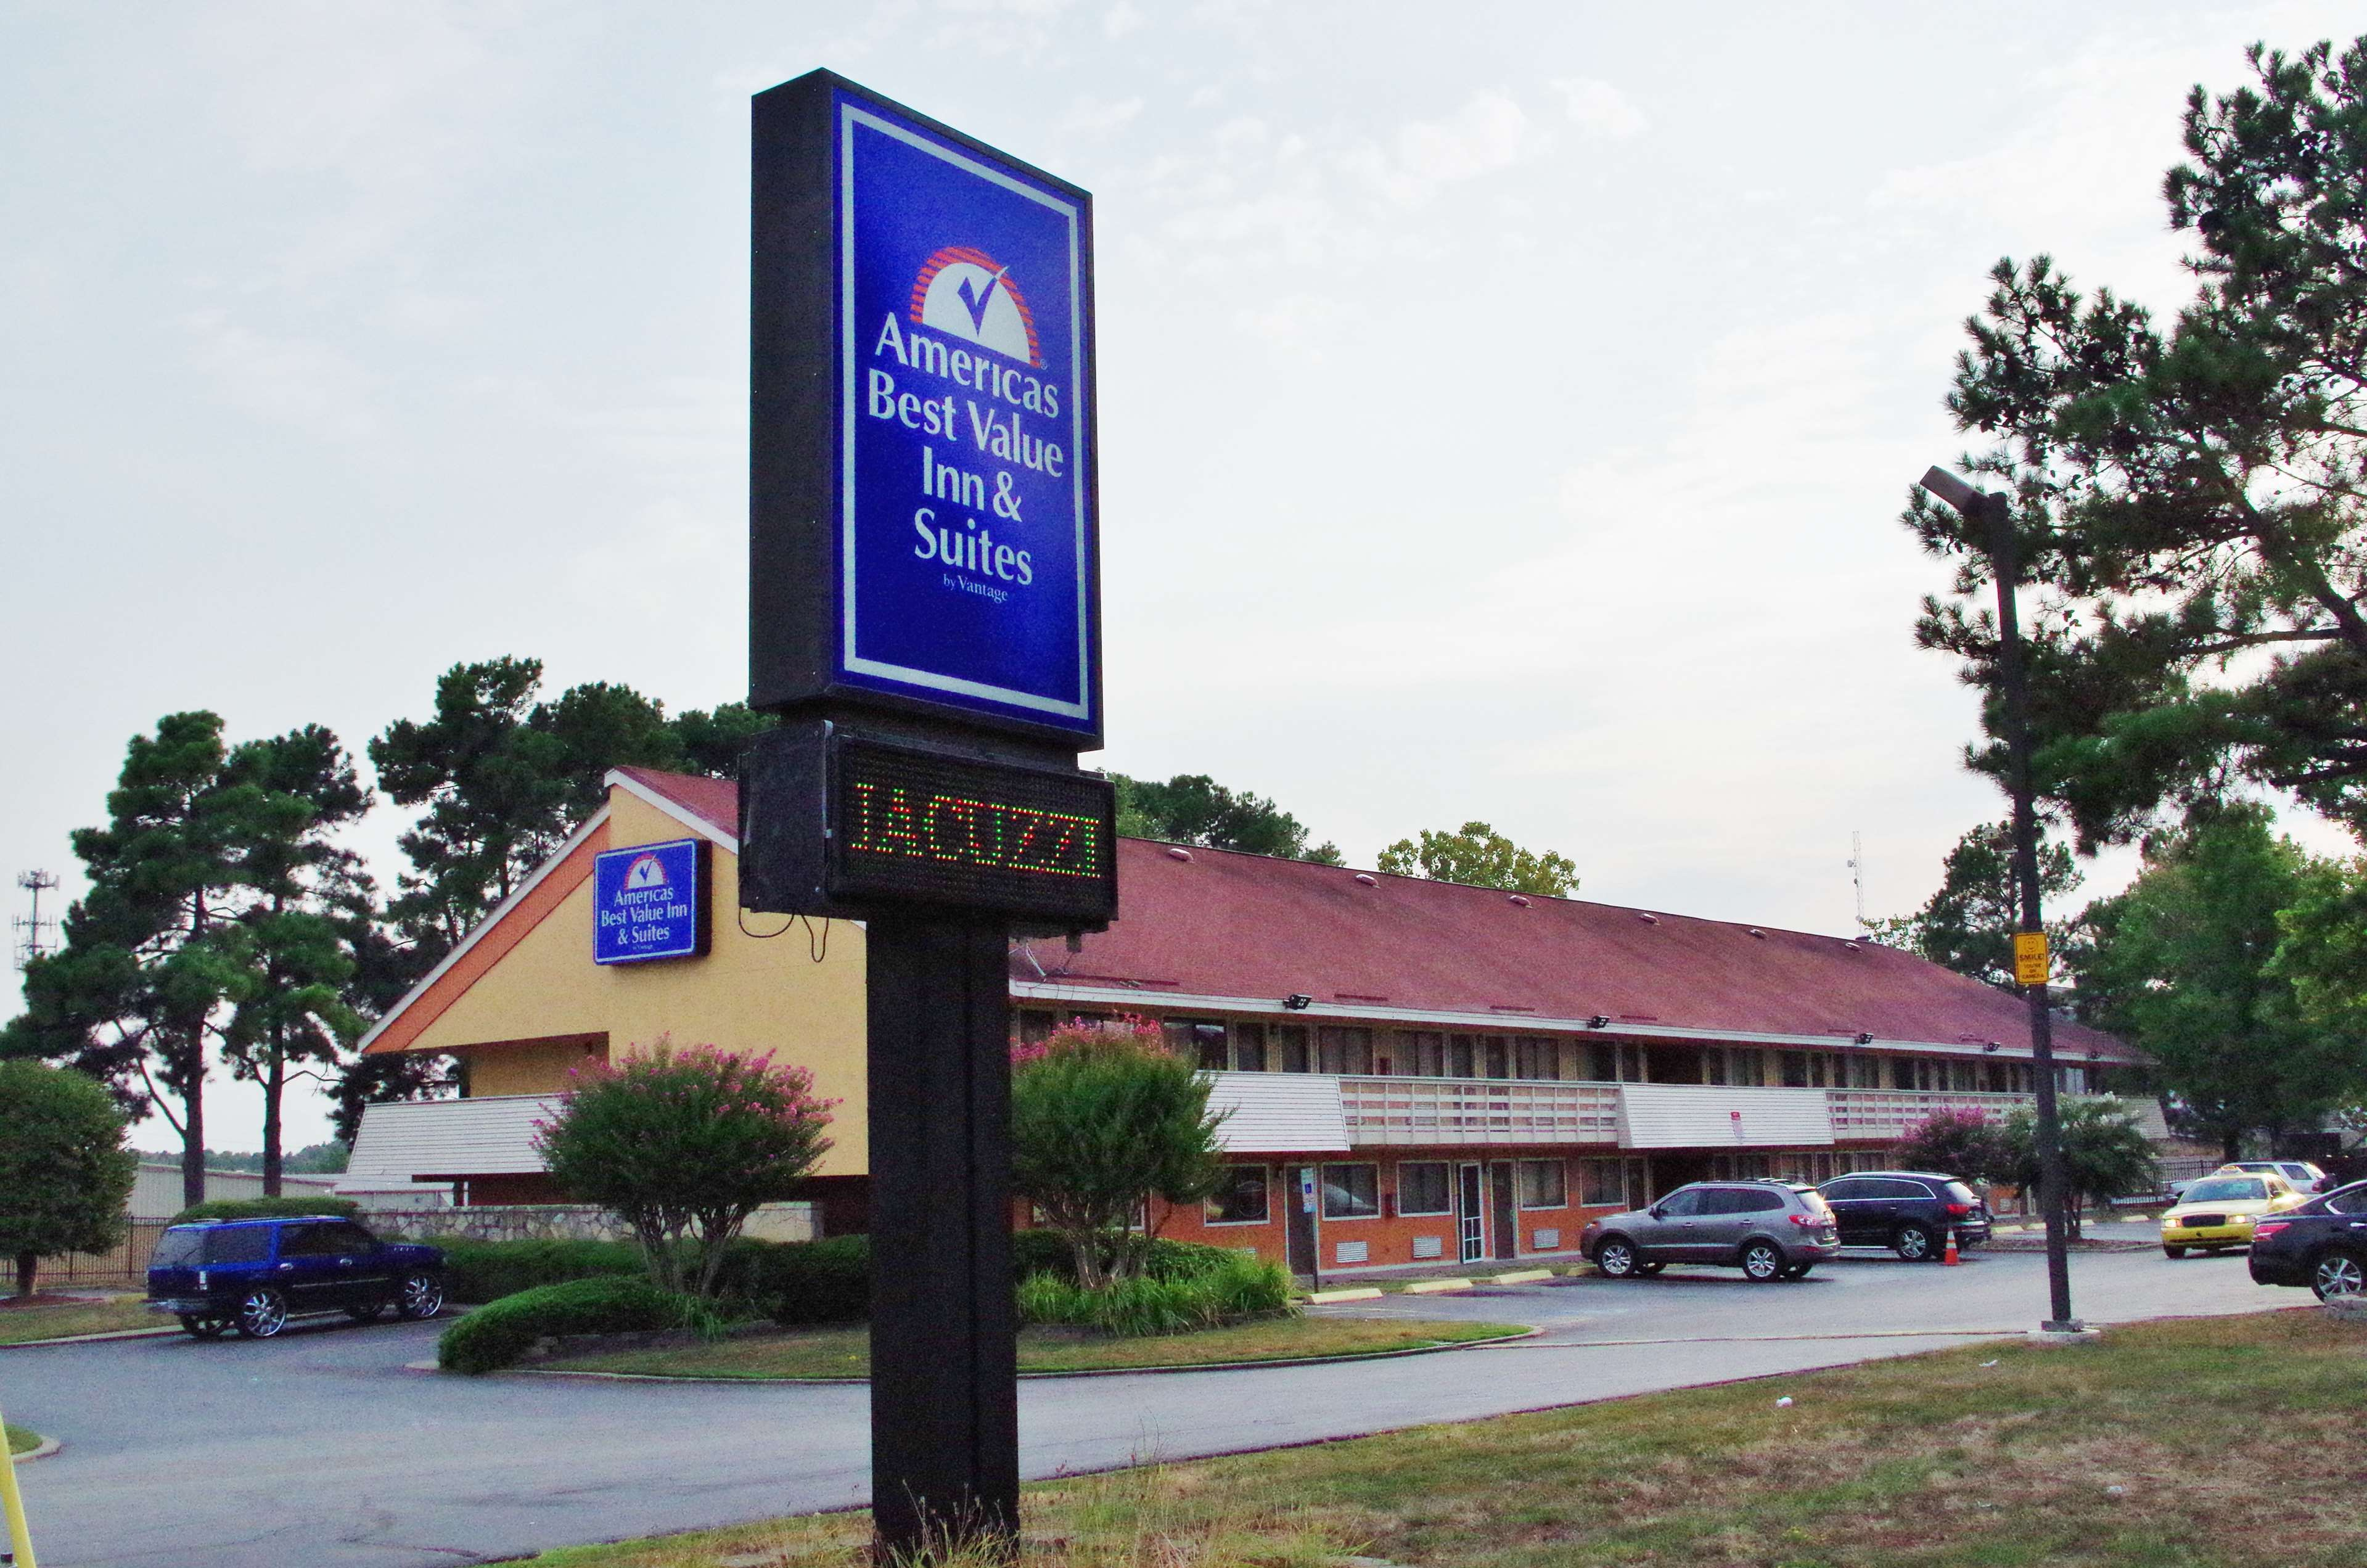 Americas best value inn suites little rock coupons near for Americas best coupon code